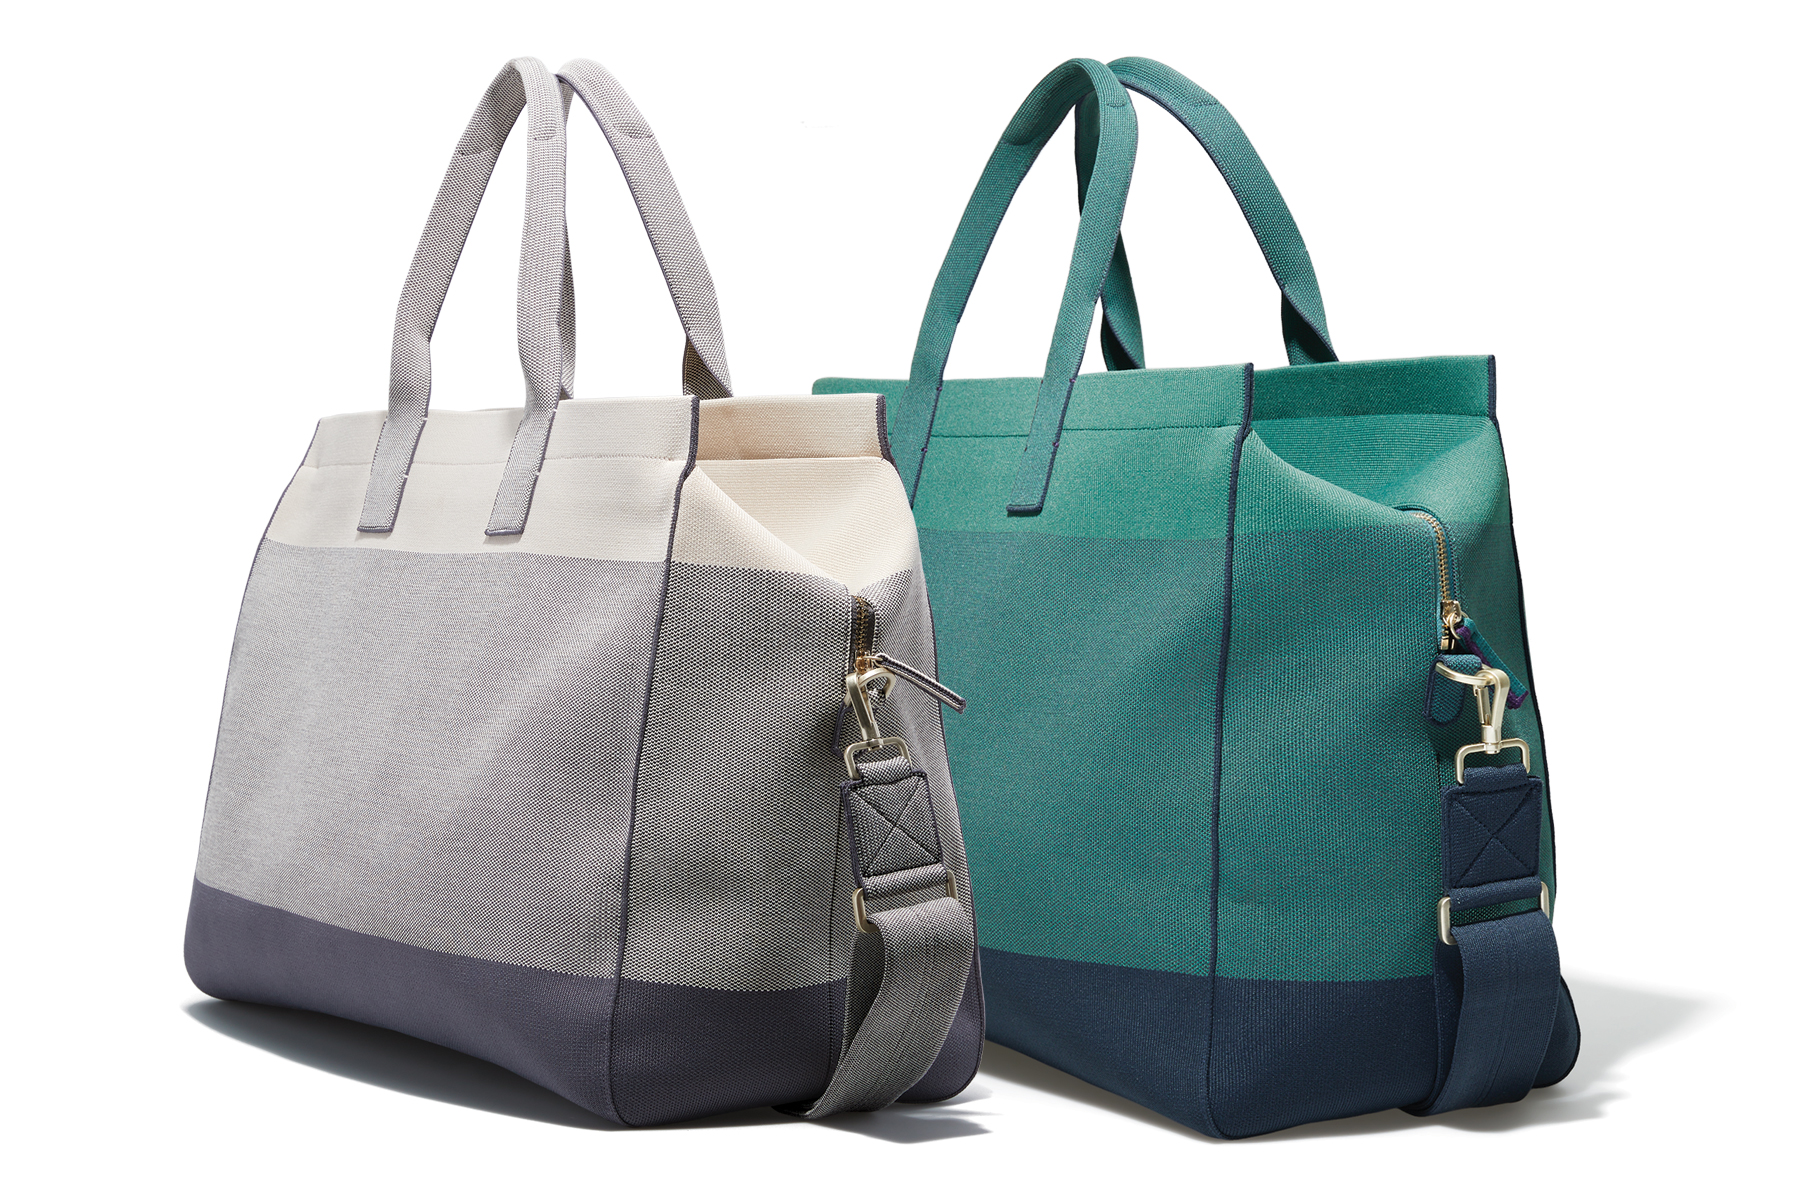 Rothy's weekender tote in Stone and Deep Spruce